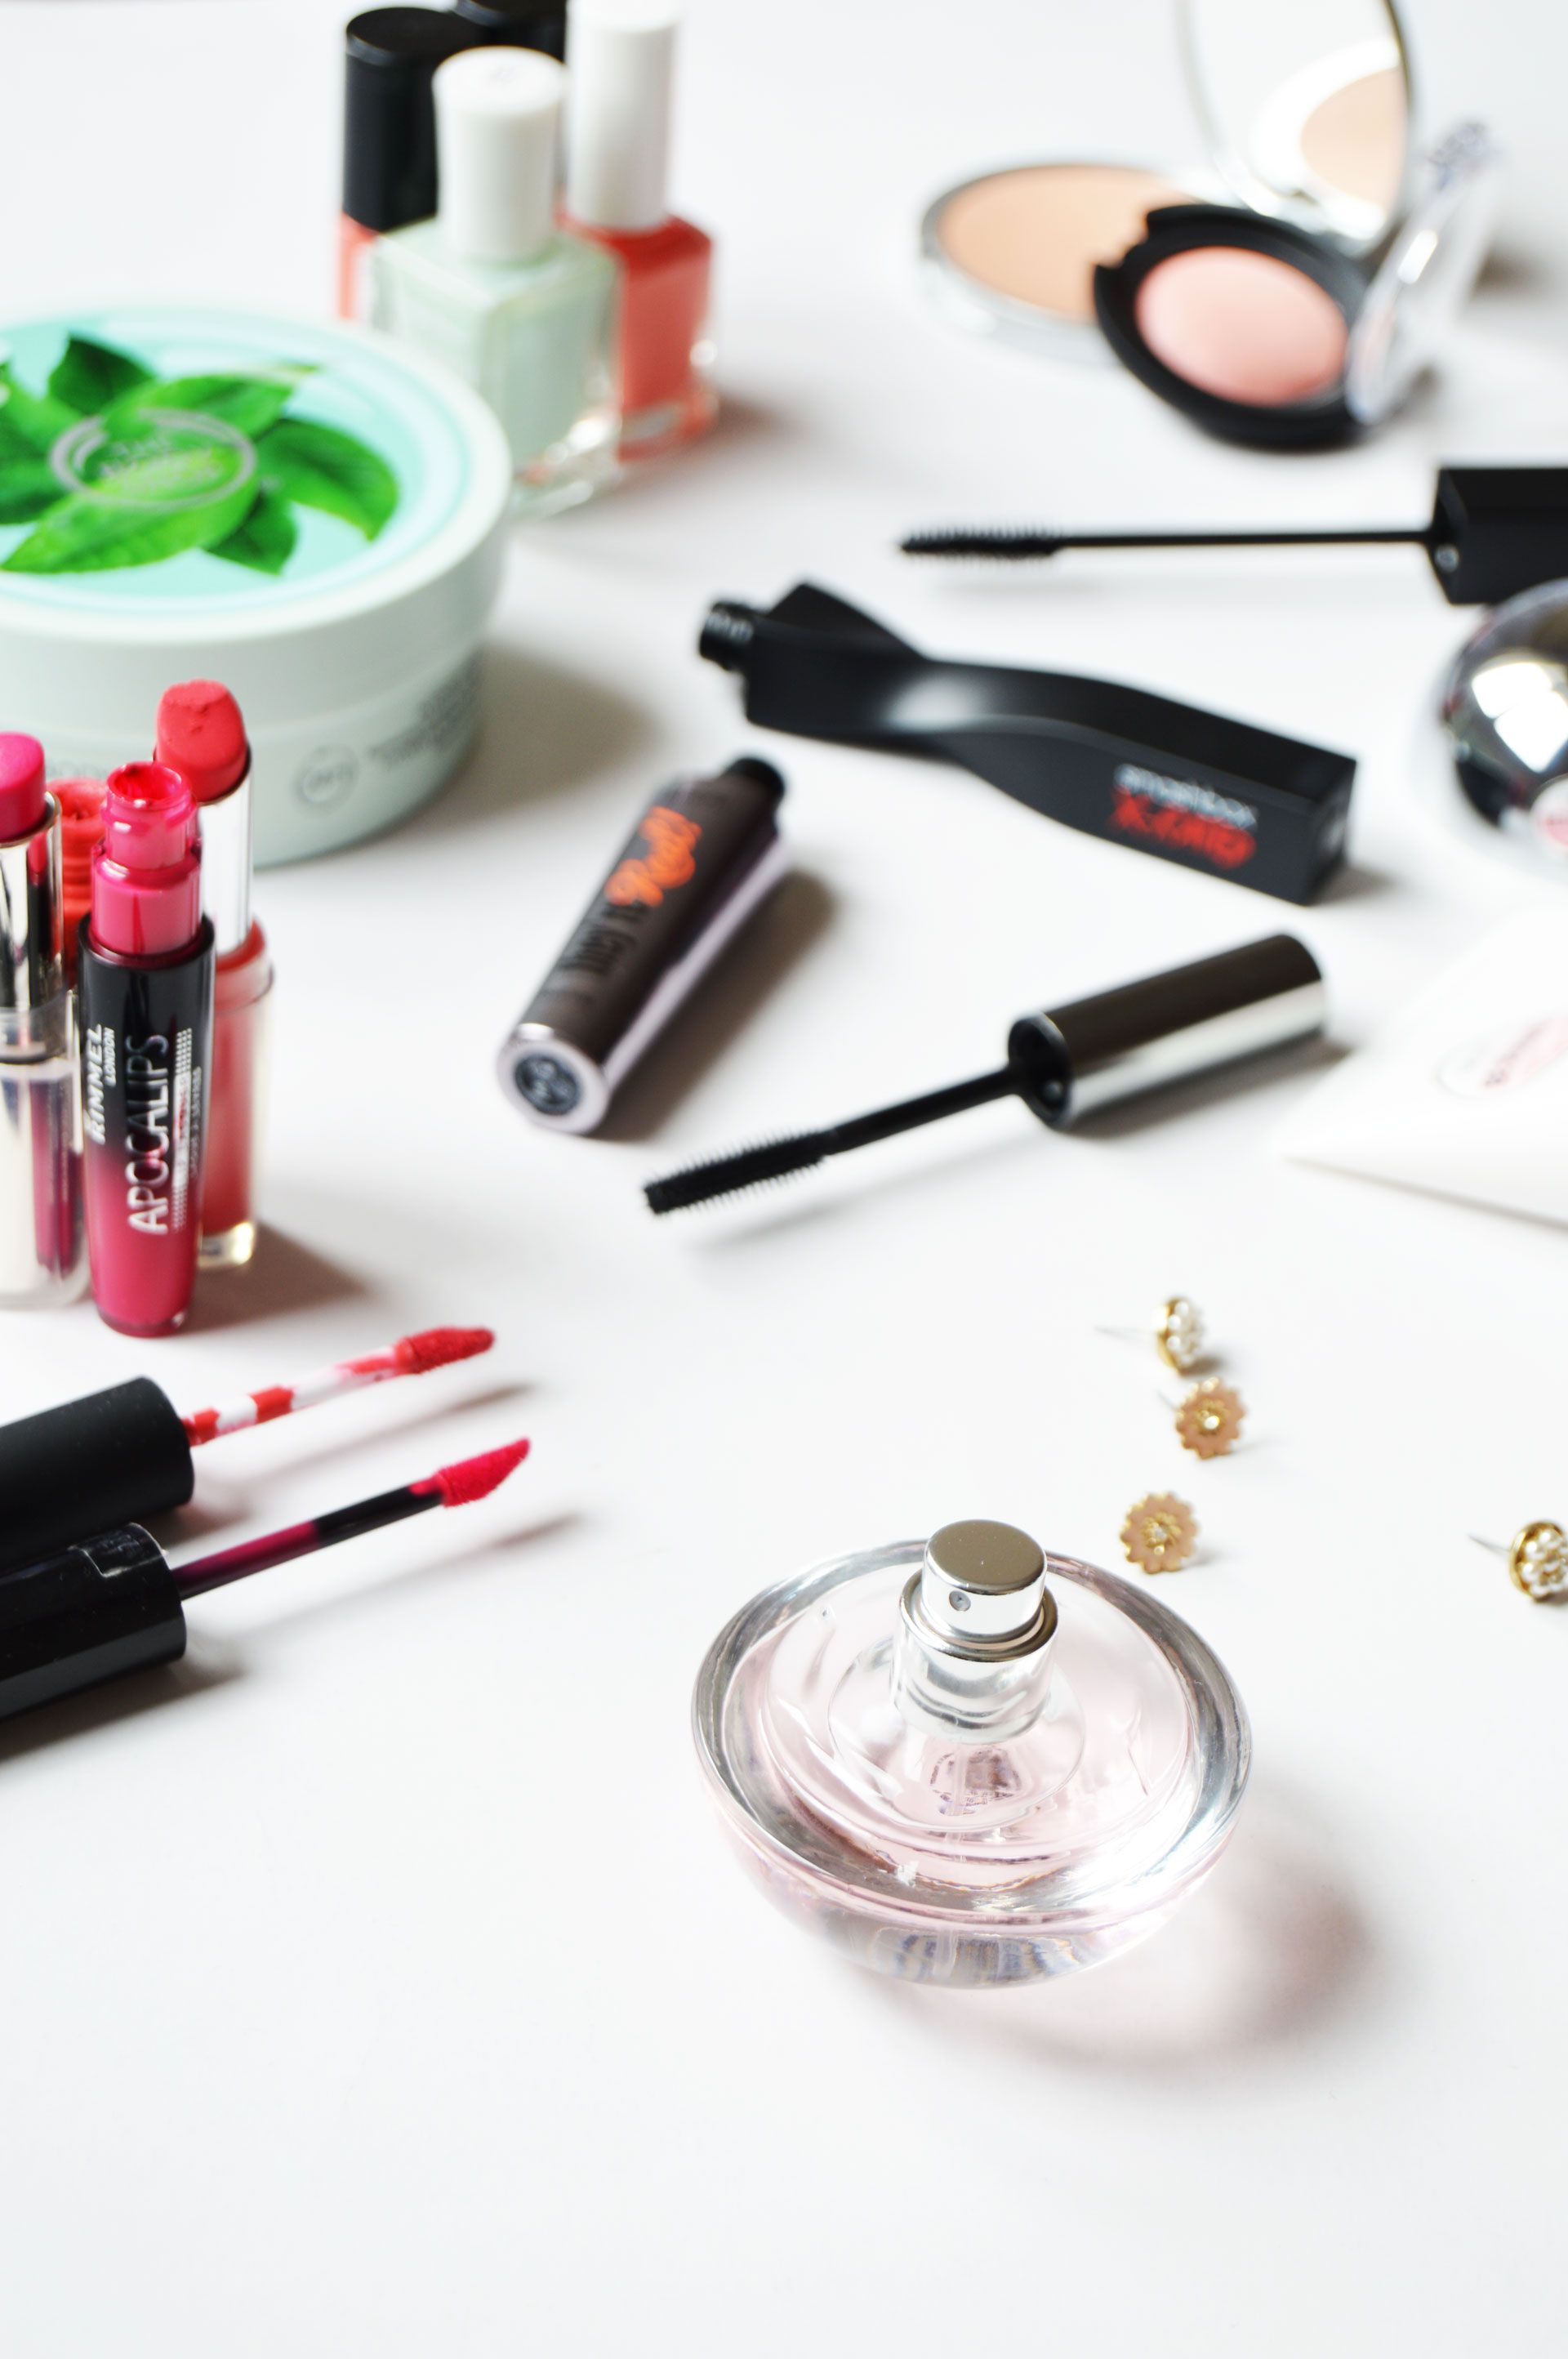 Spring Revamp – Beauty Bits Everyone Needs   Refreshing the skincare and makeup routine each season is good, revamping the routine according to what skin needs will make the skin healthier. Click through to check out all the tips.